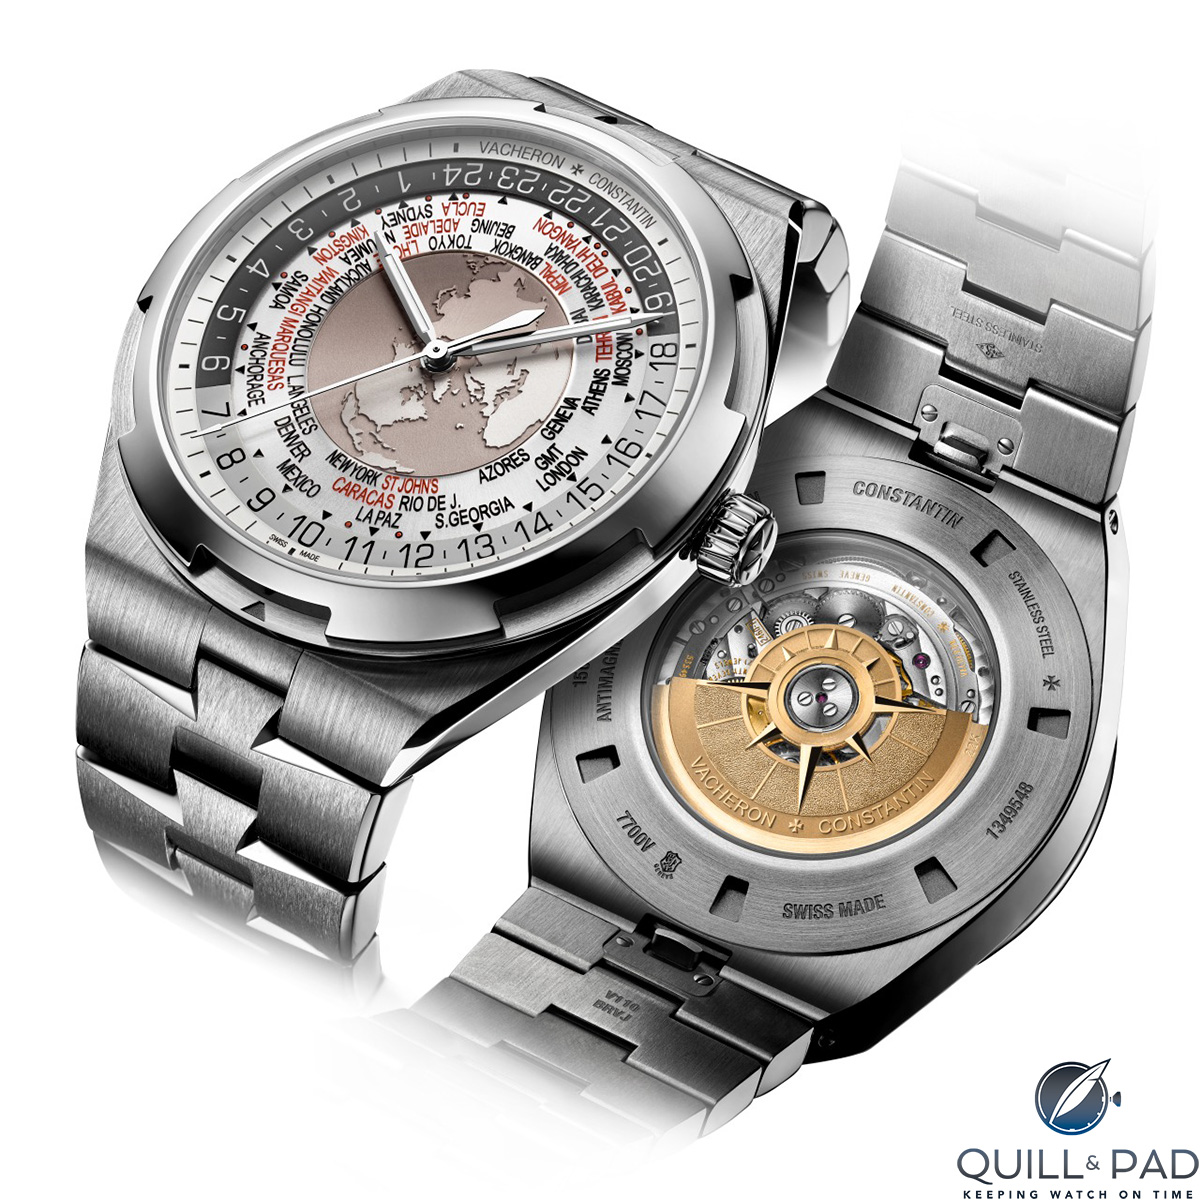 Vacheron Constantin Overseas Worldtimer from the back: check out the rotor's windrose design